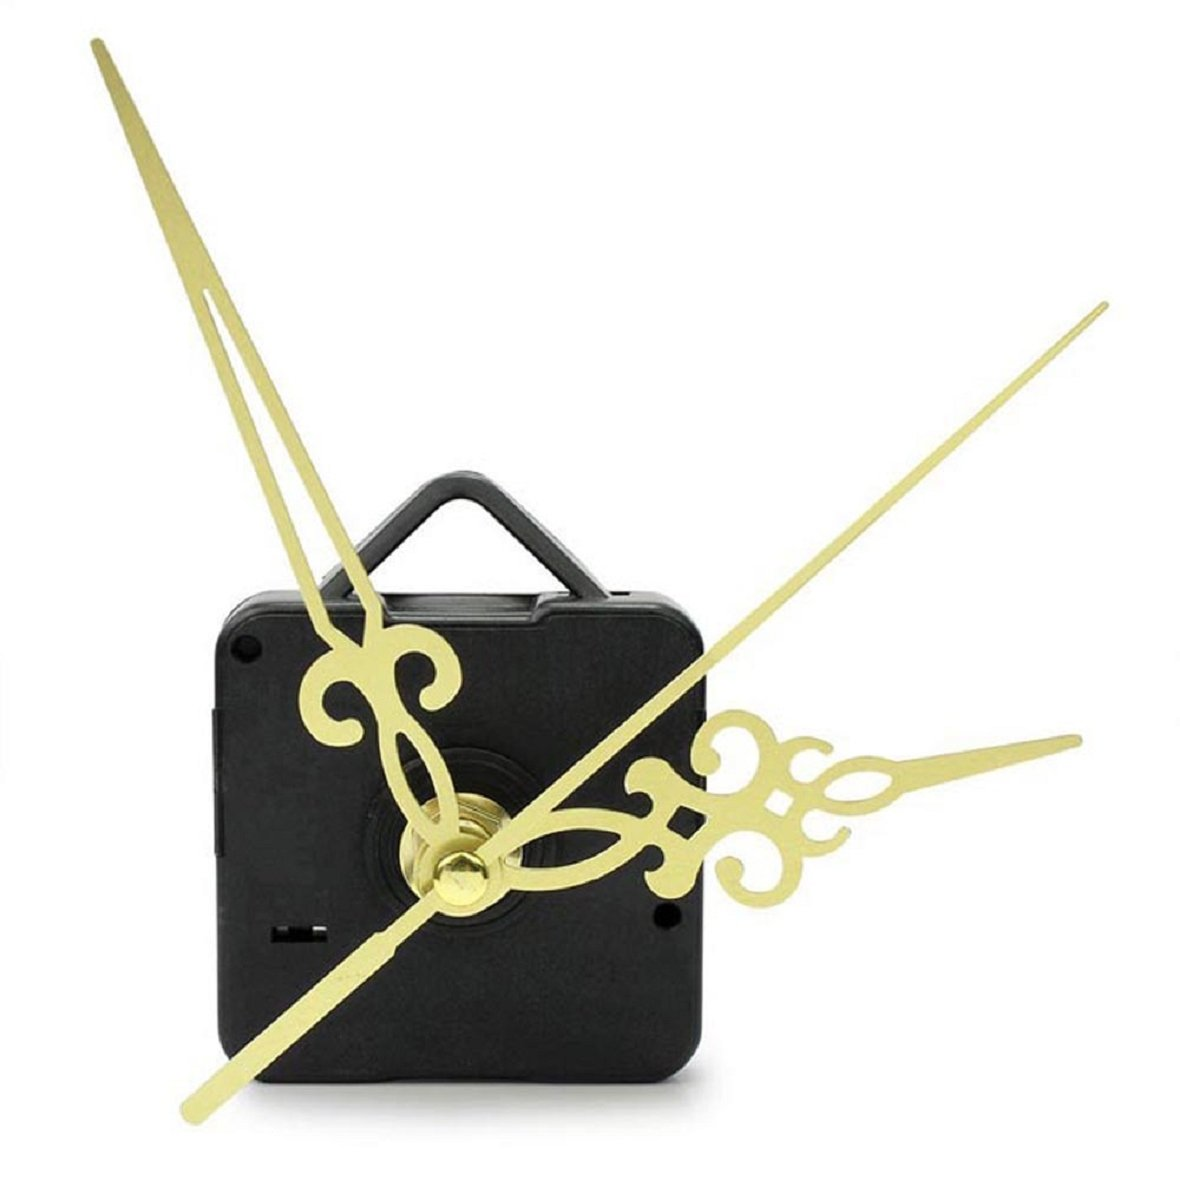 TONSEE 1PC Gold Hands DIY Quartz Wall Clock Movement Mechanism Replacement